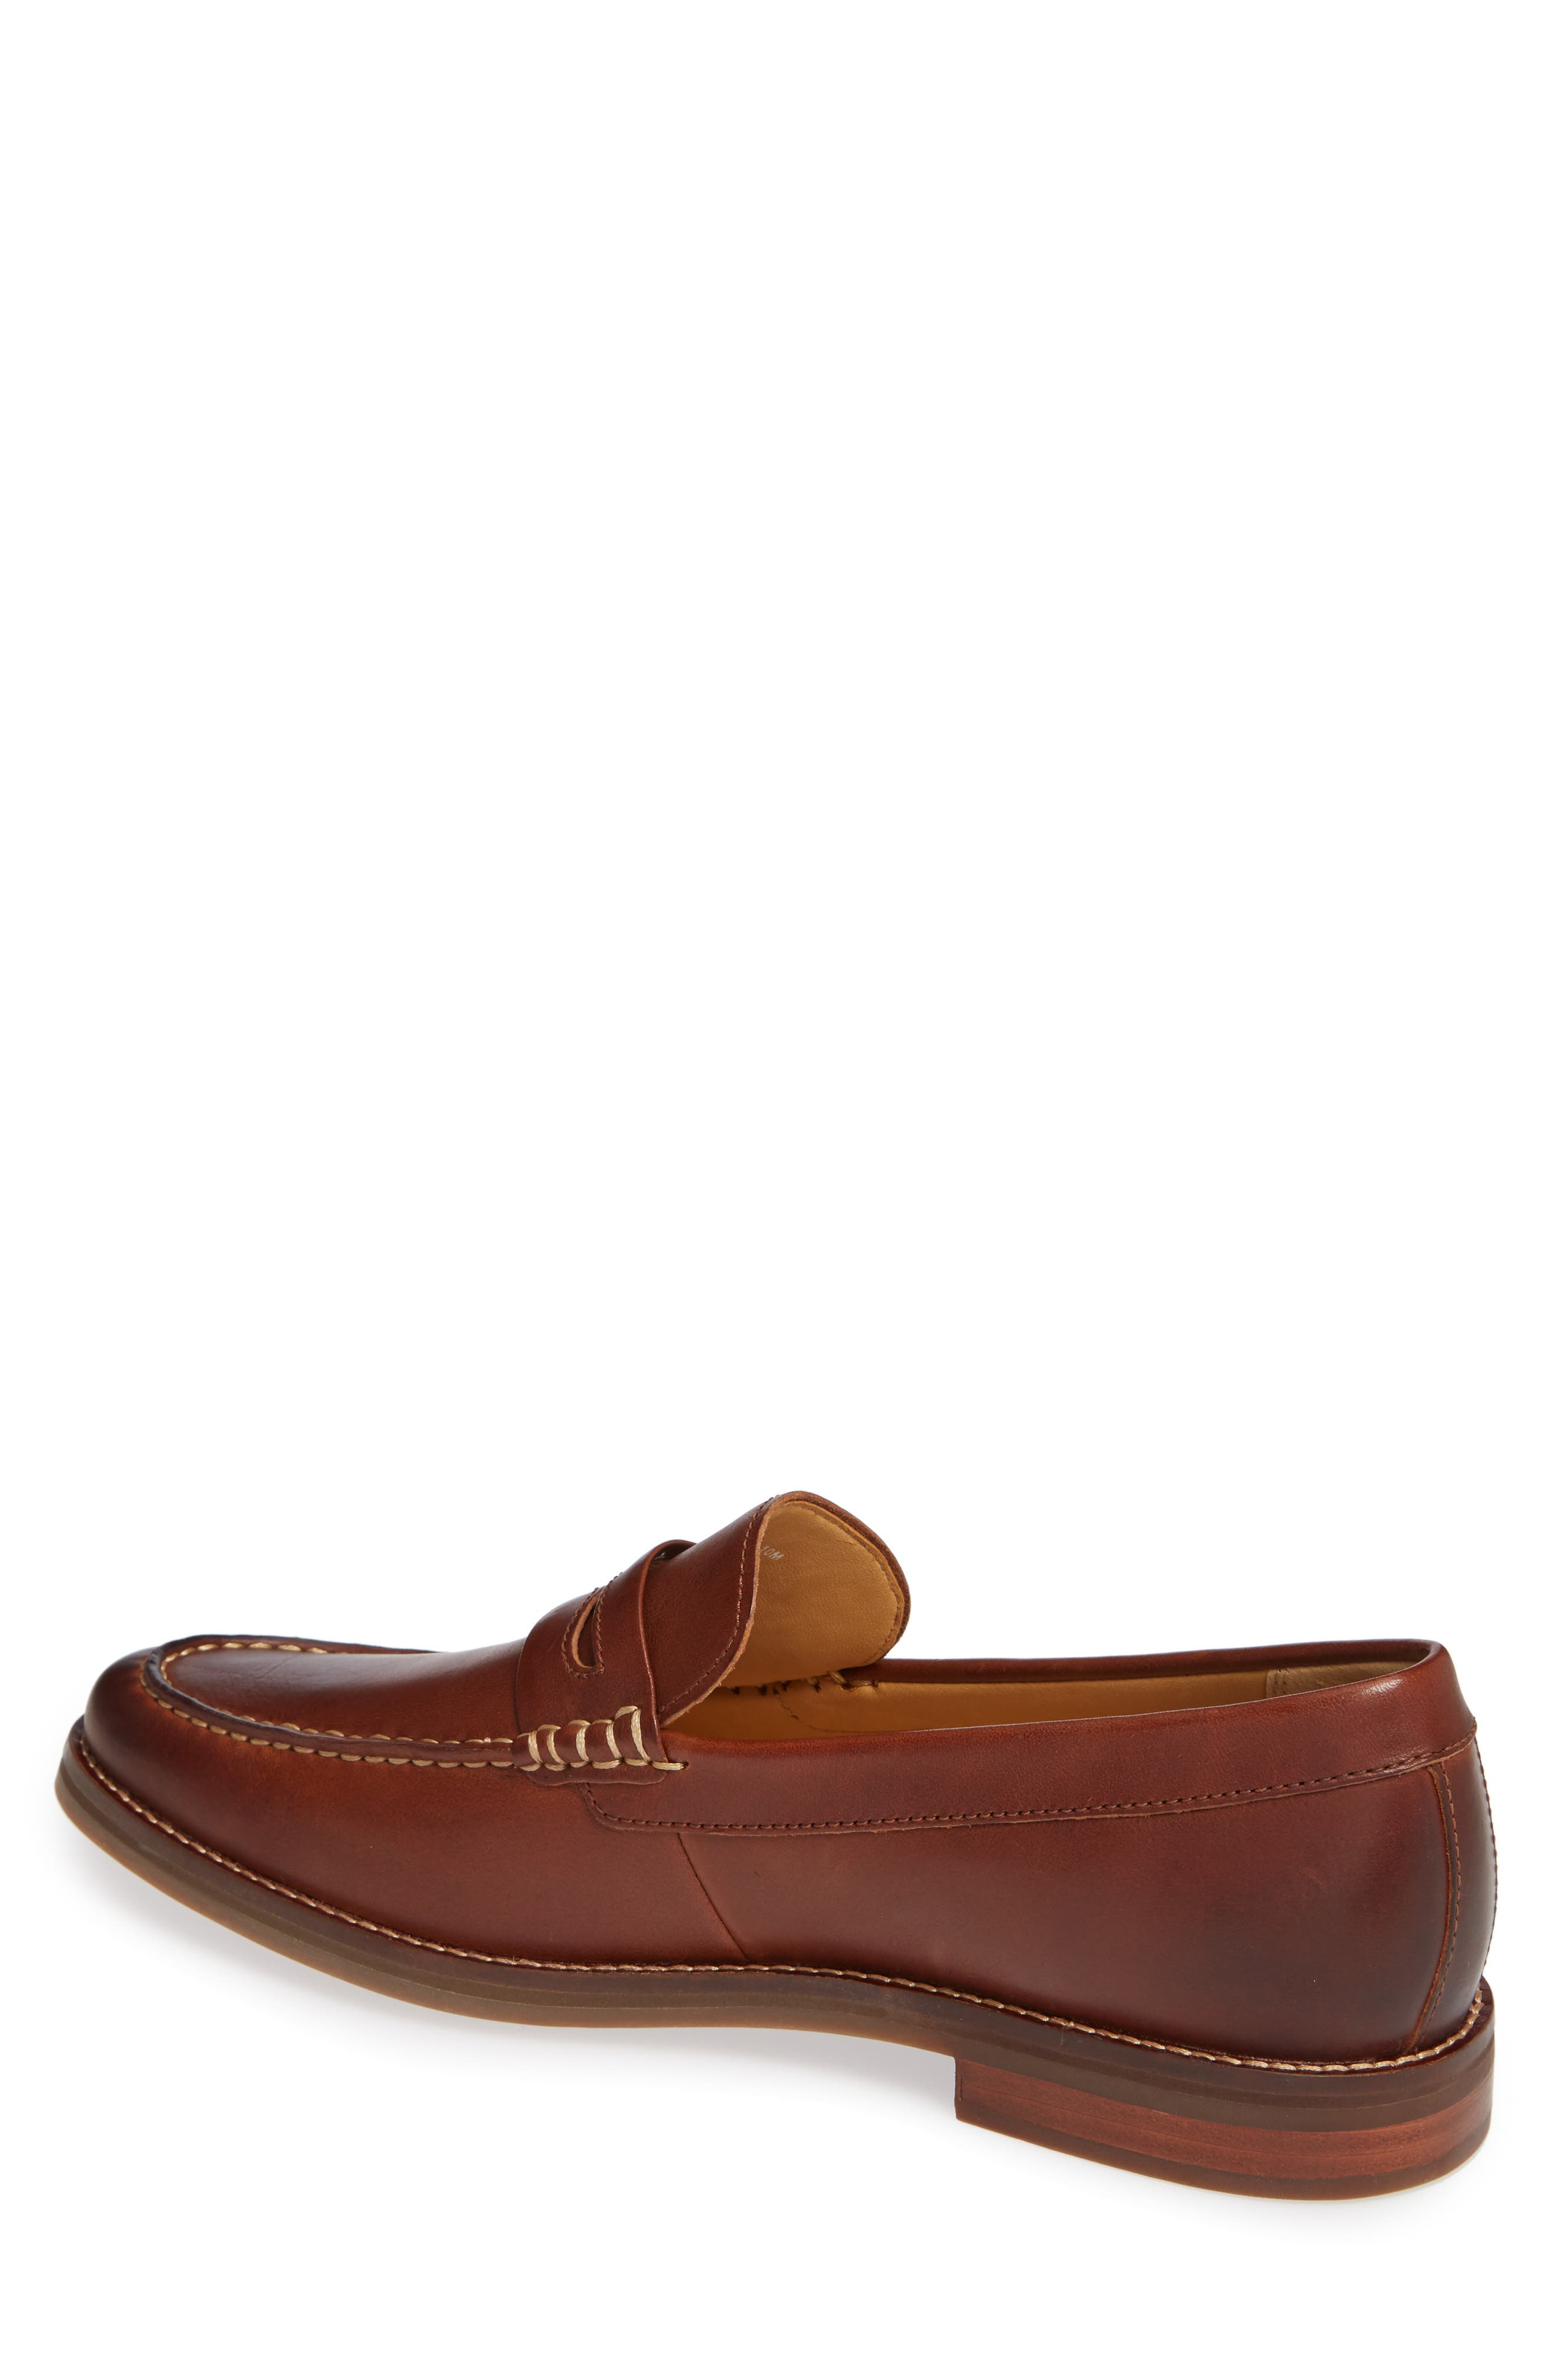 Gold Cup Exeter Penny Loafer,                             Alternate thumbnail 2, color,                             TAN